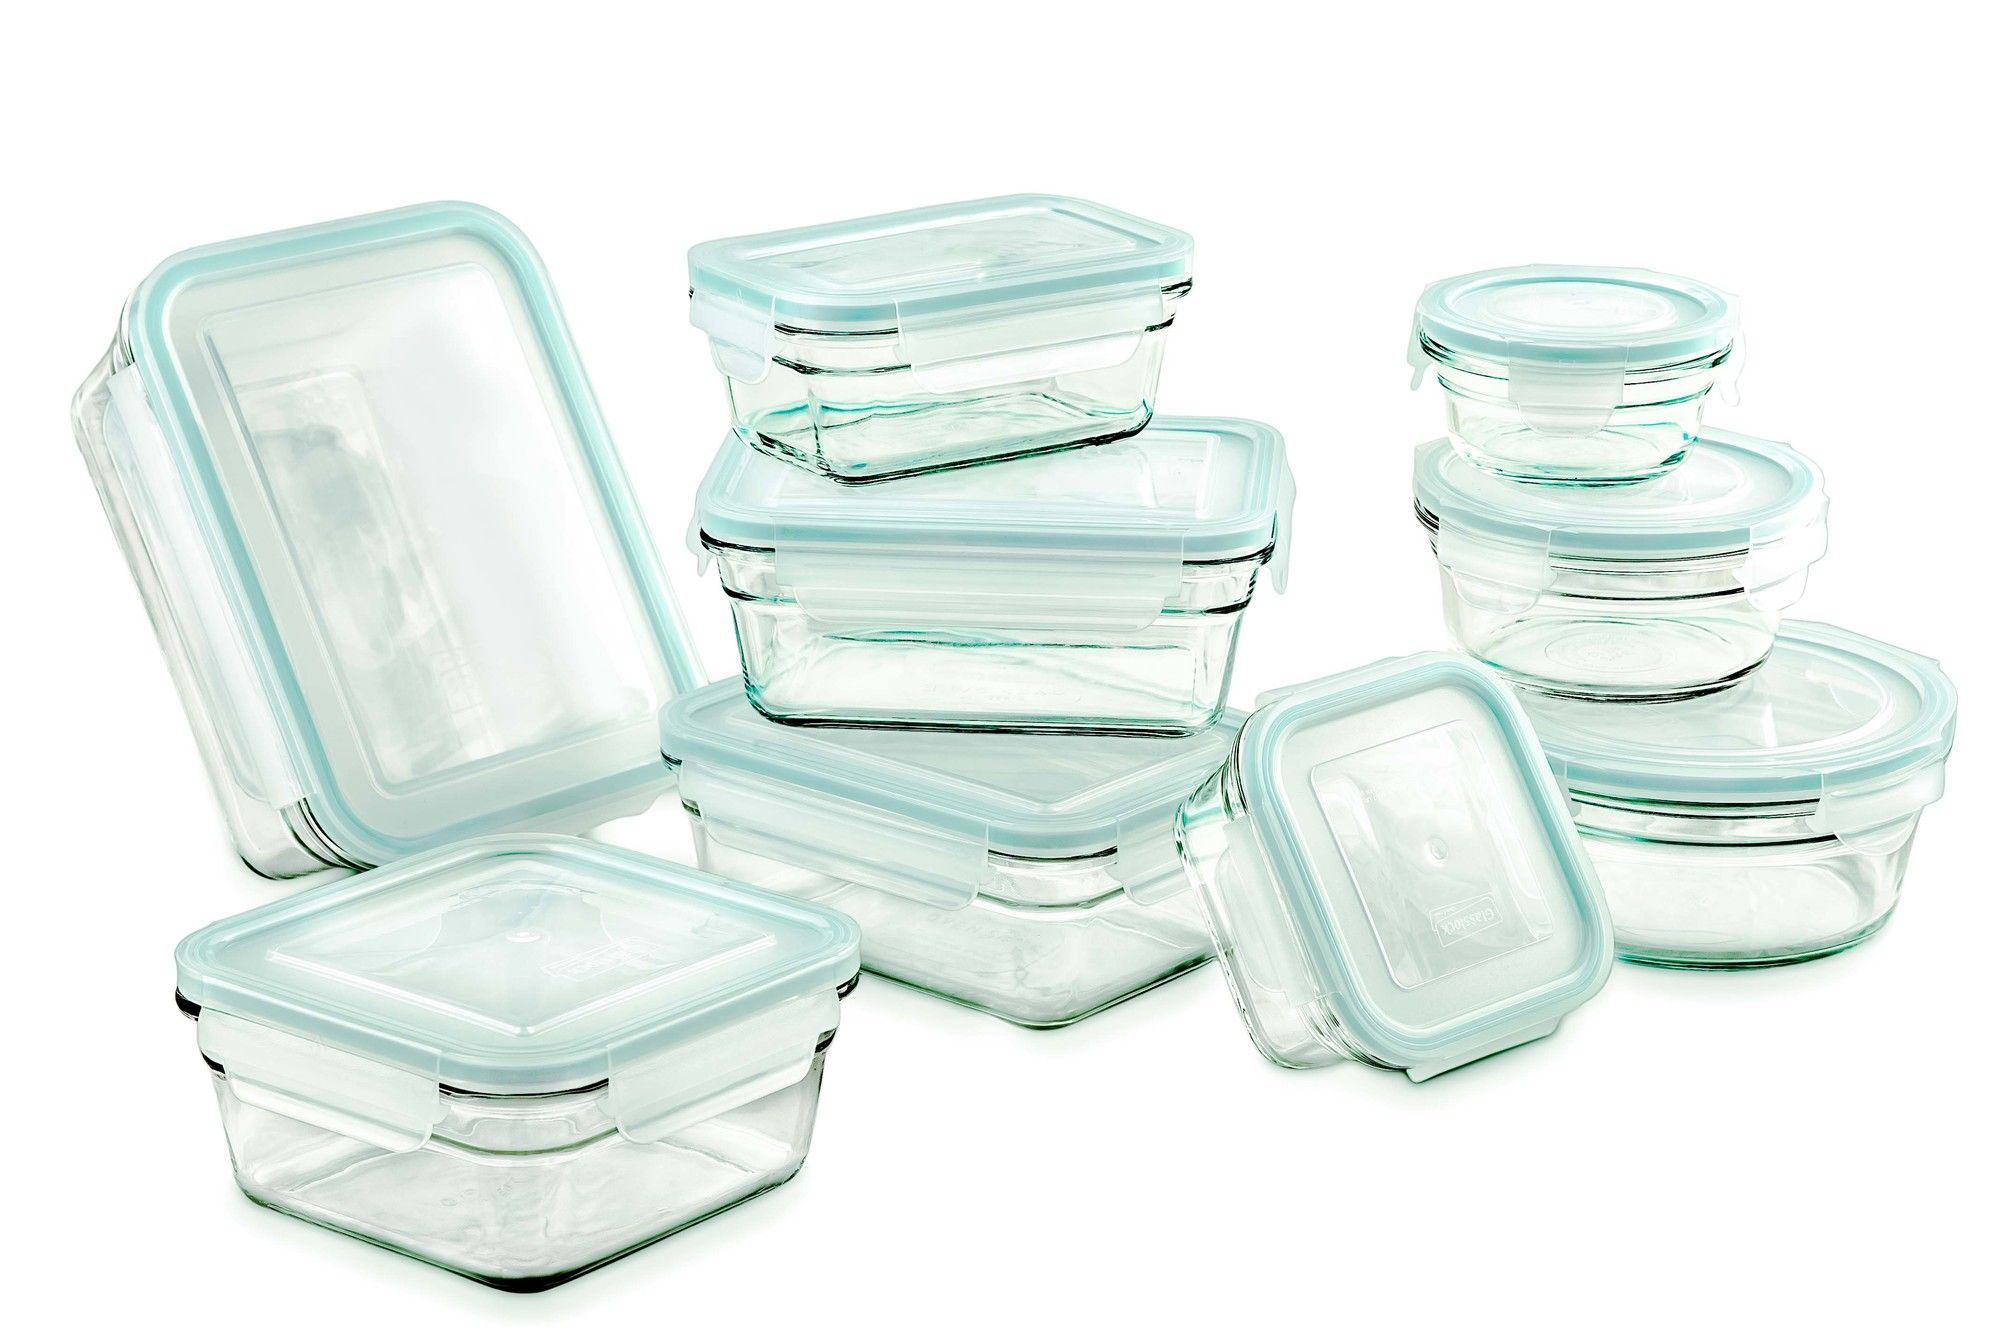 Glasslock Food Storage Container Sets 18 Piece Glasslock Storage Container Set  Products  Pinterest